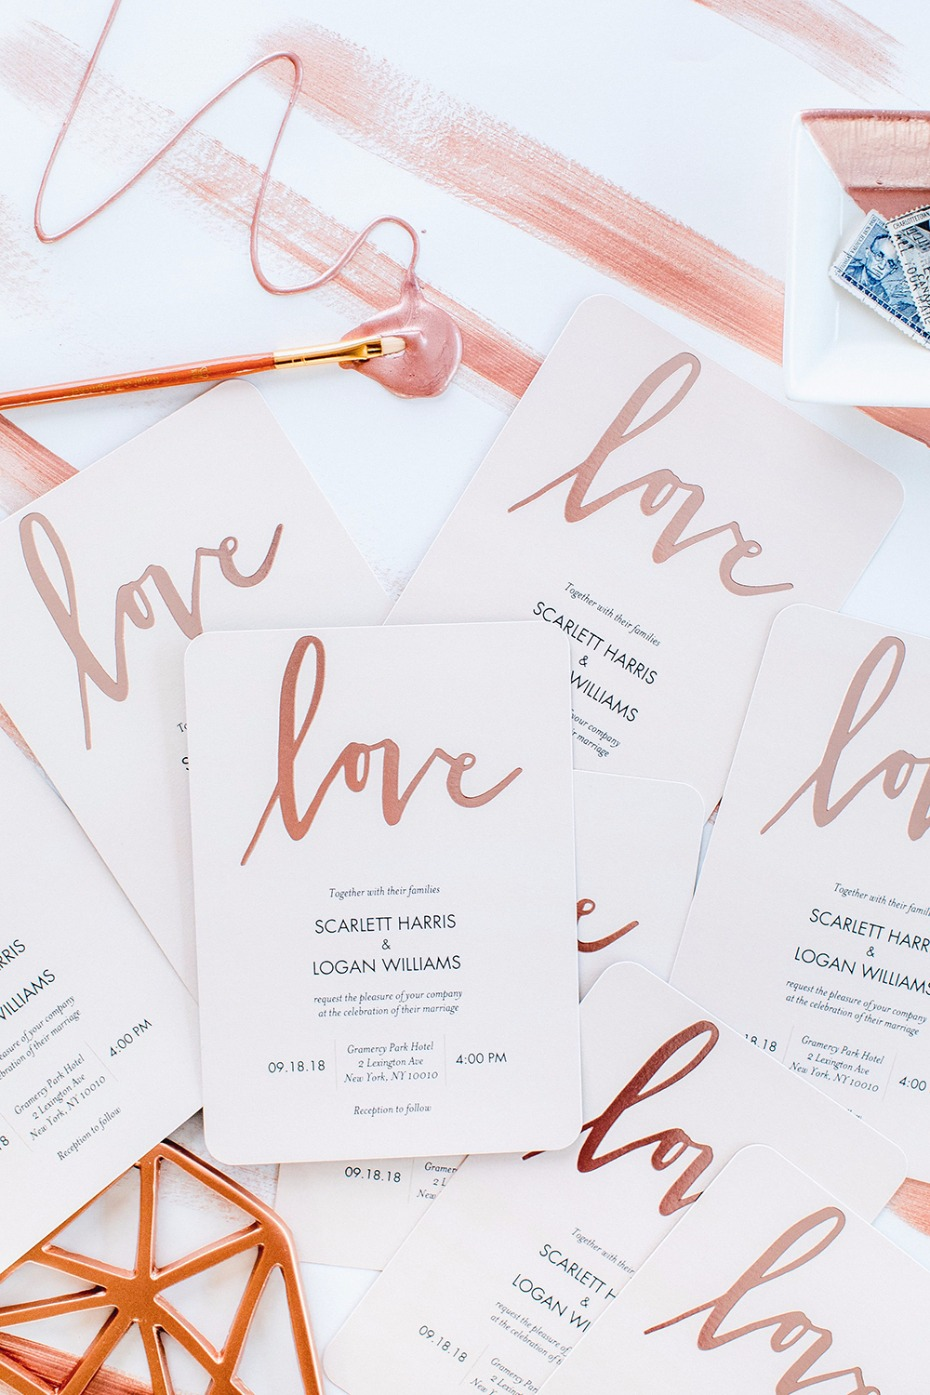 Rose gold wedding invites from Shutterfly